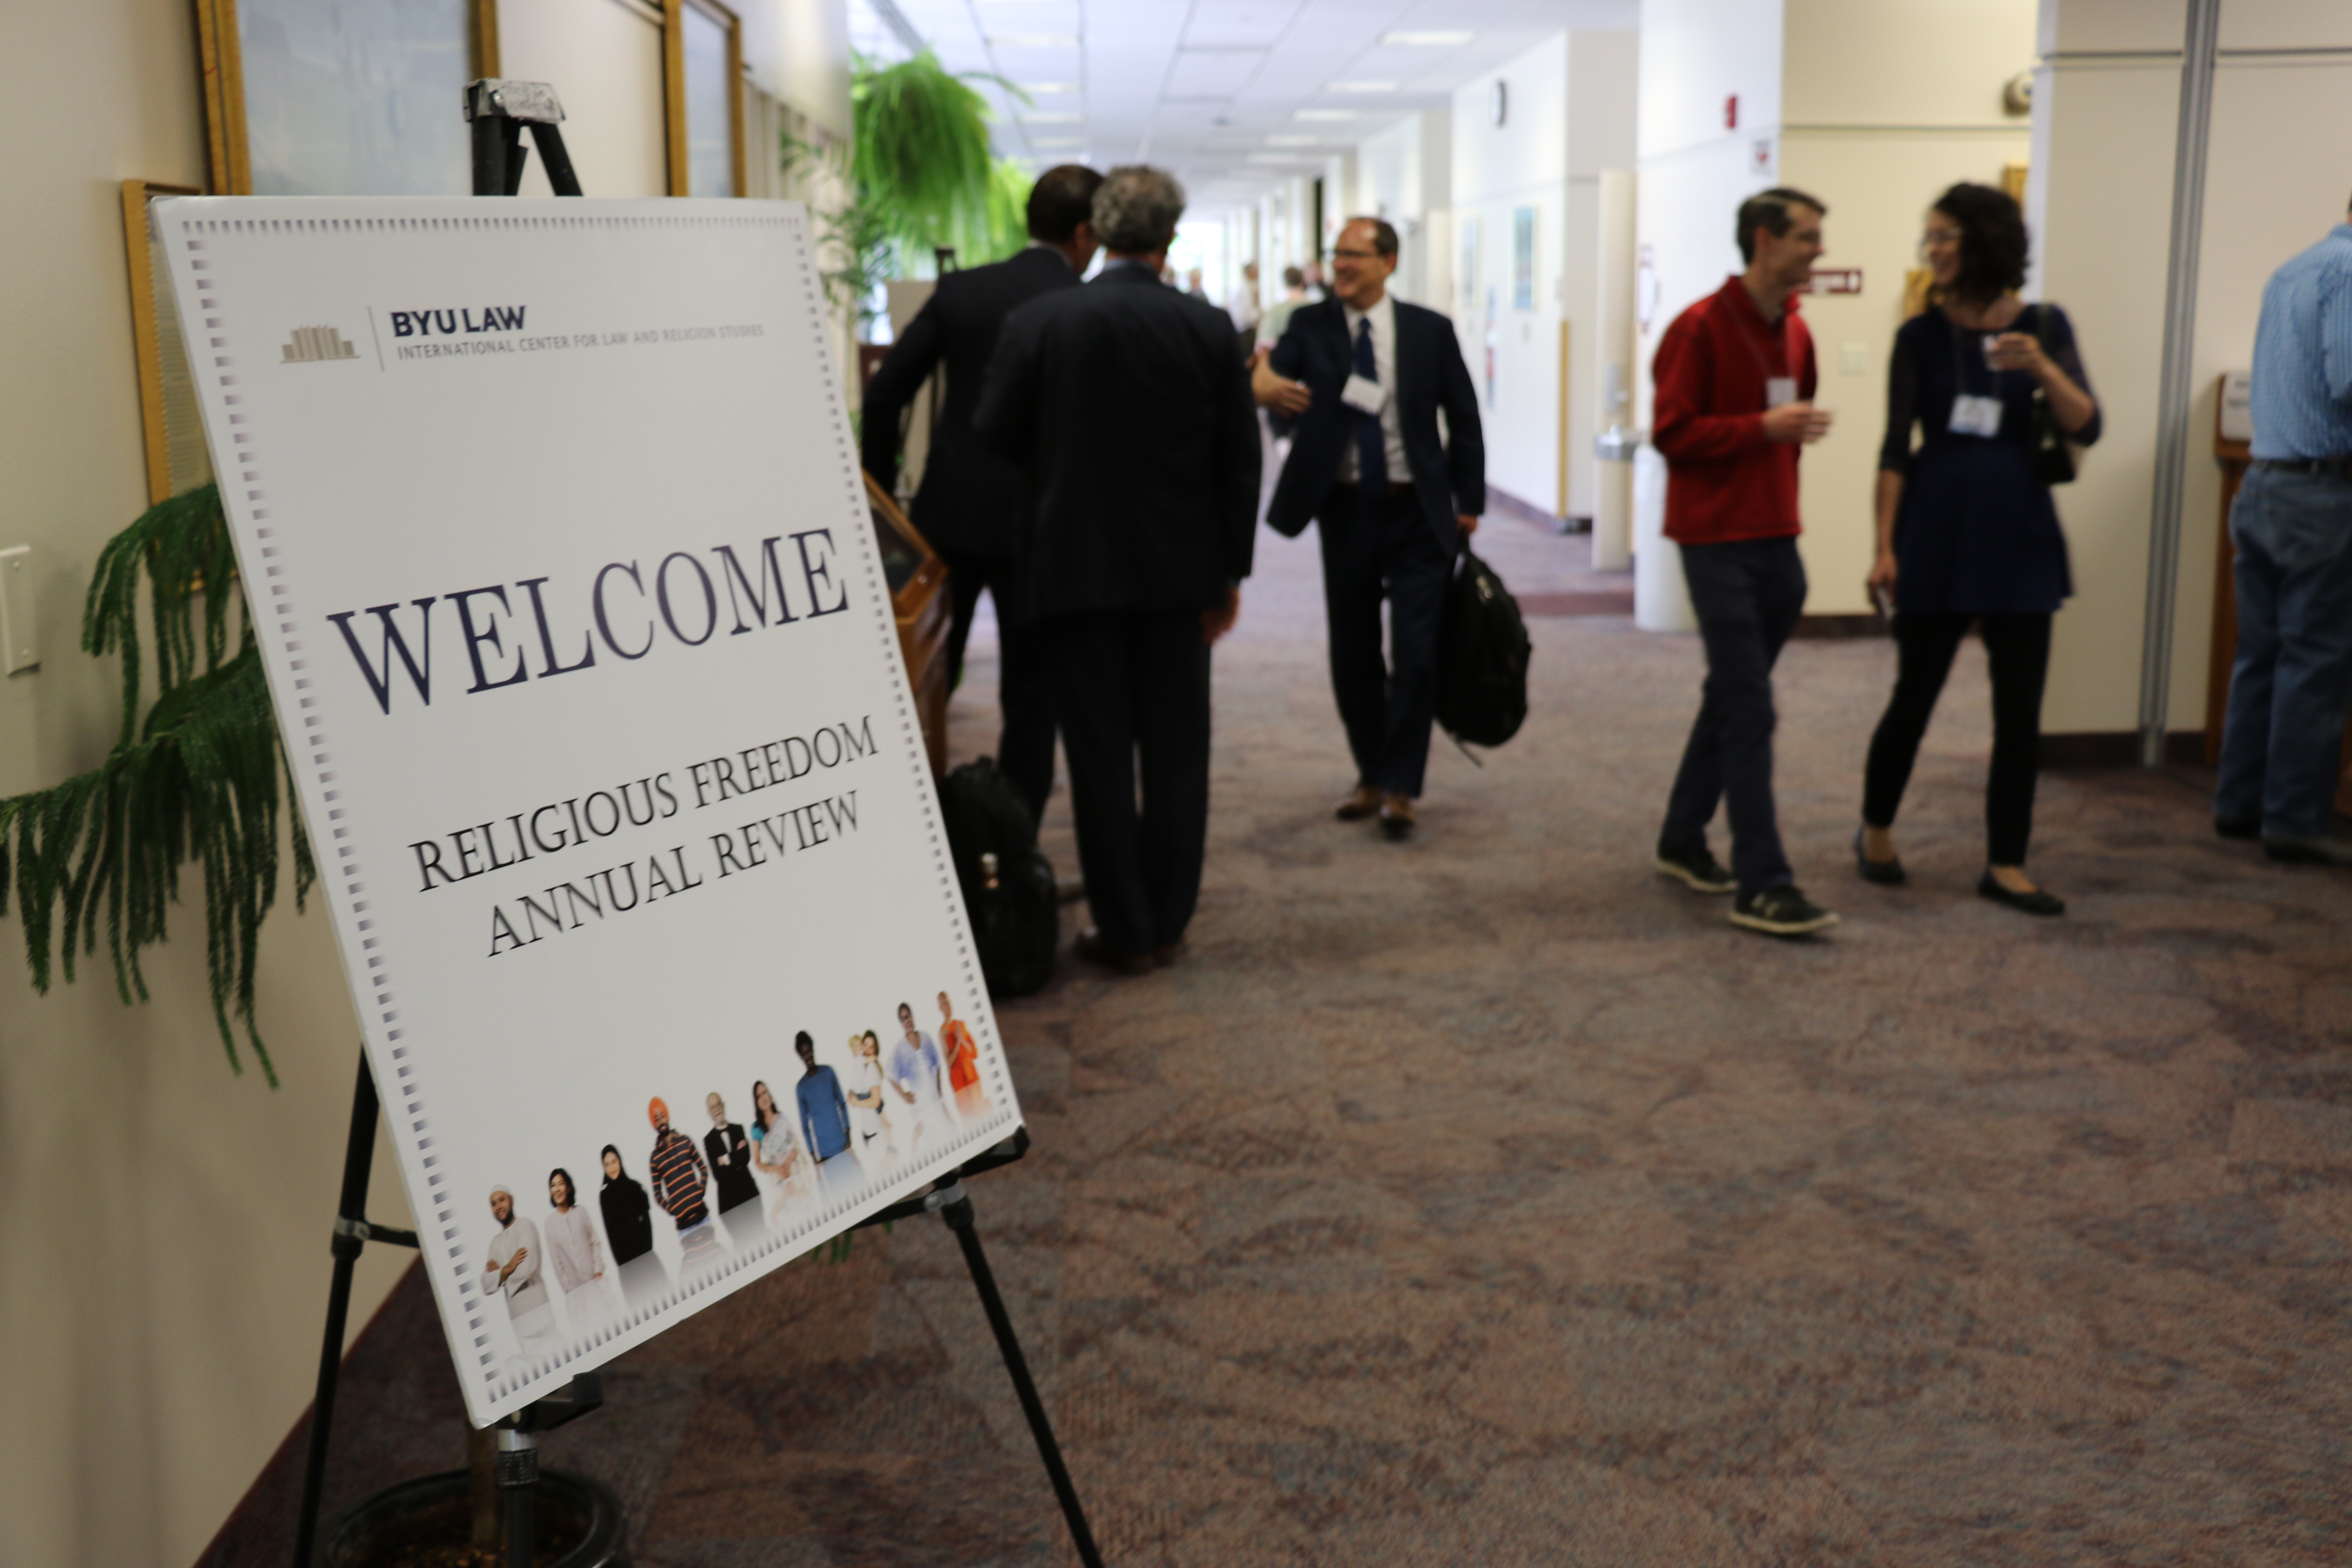 Subjects discussed at the recent Religious Freedom Annual Review at BYU included a panel discussion of protecting religious freedom at public schools.